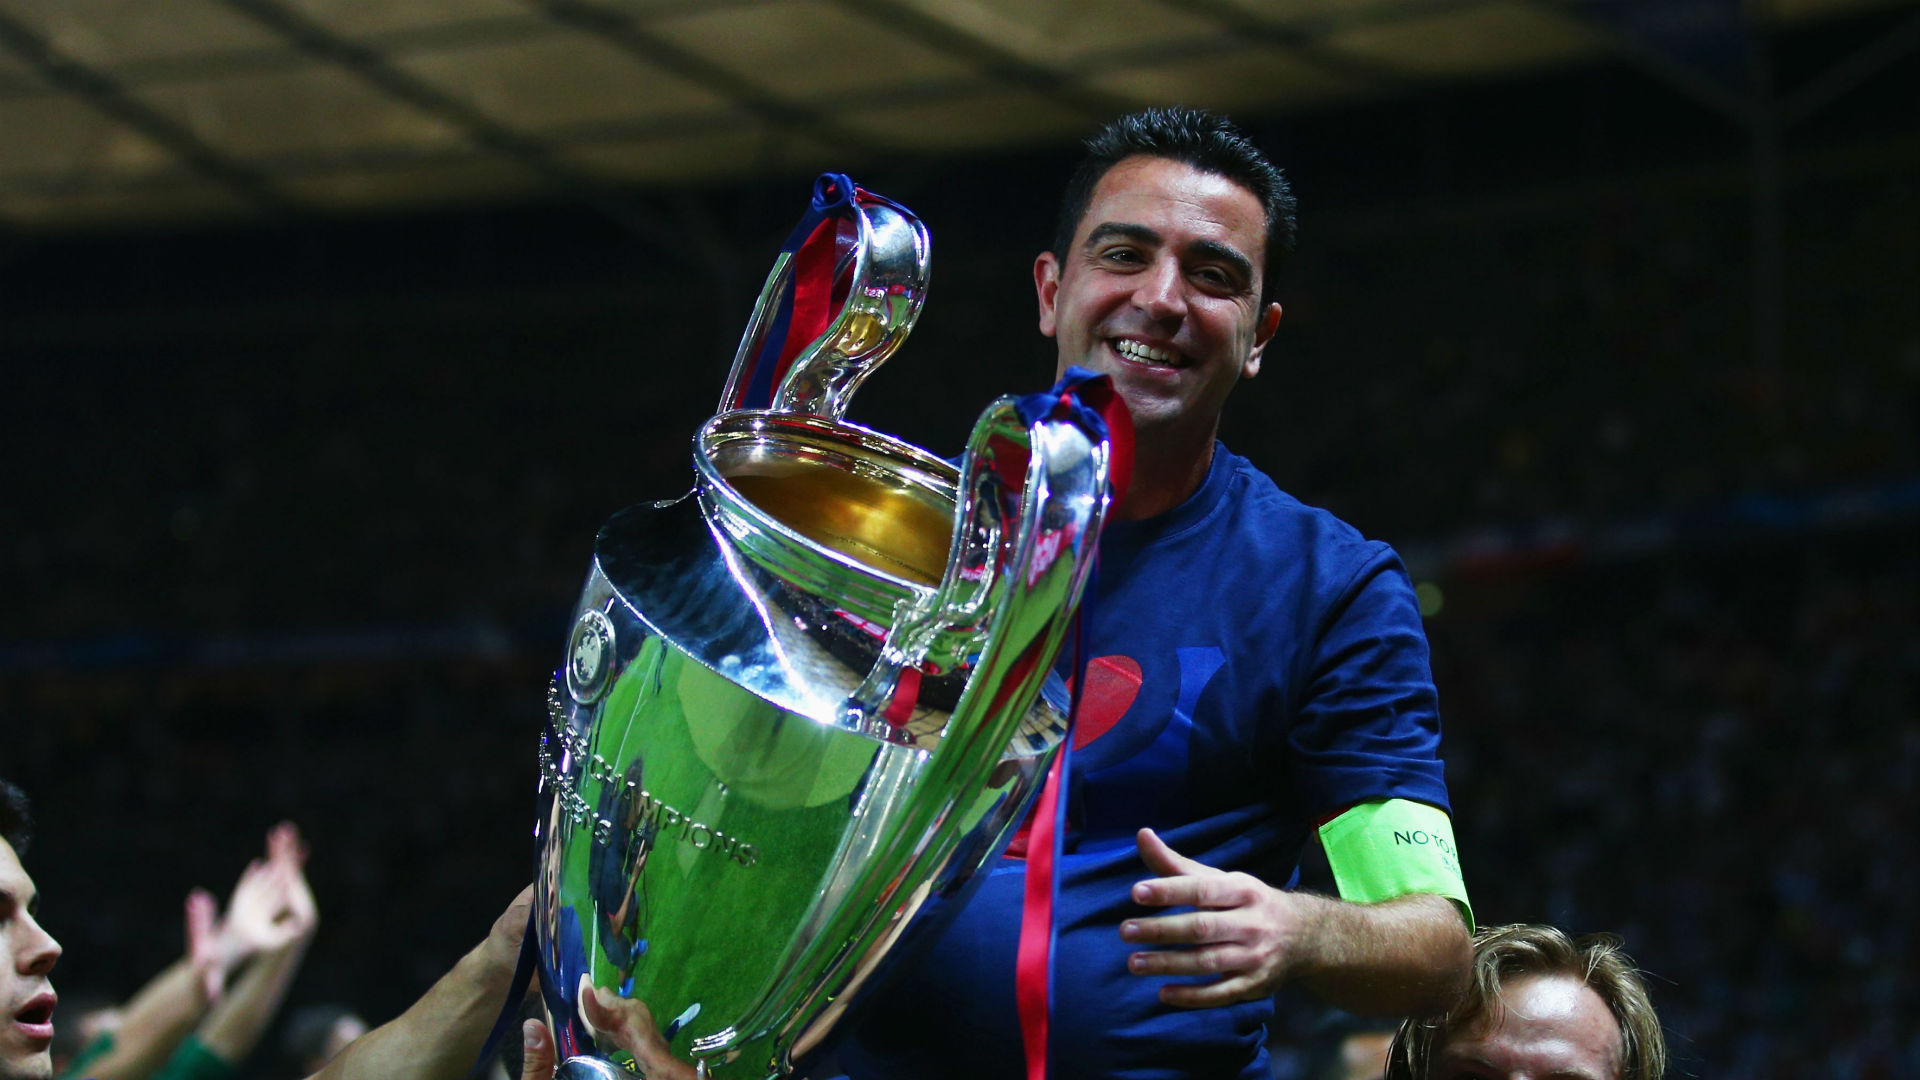 On this day in sport: Xavi leaves a treble winner, Lara makes history and Agassi clean sweep